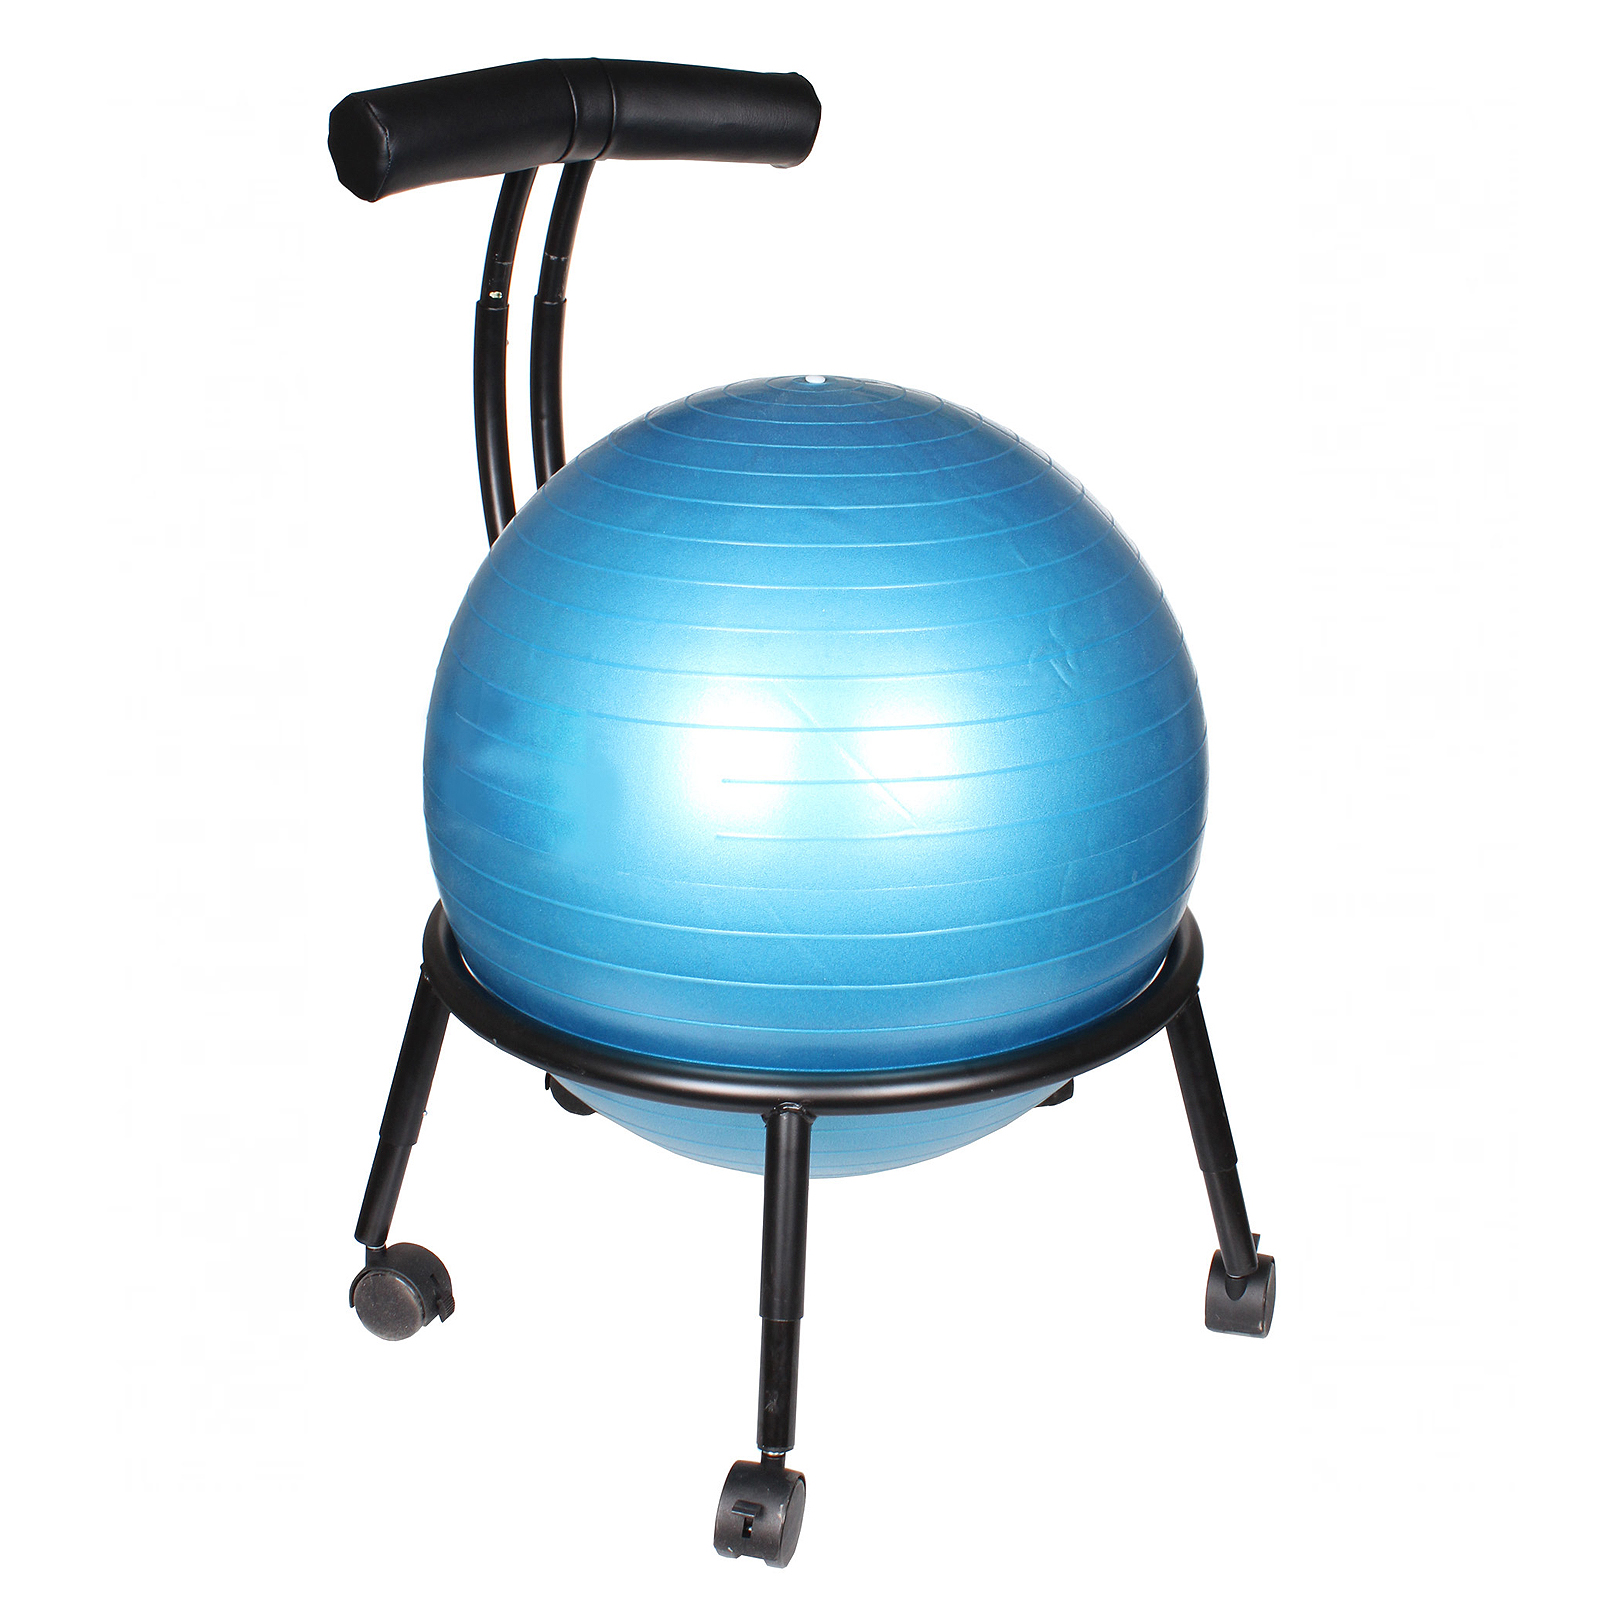 yoga studio pilates stability balance ball office. Black Bedroom Furniture Sets. Home Design Ideas